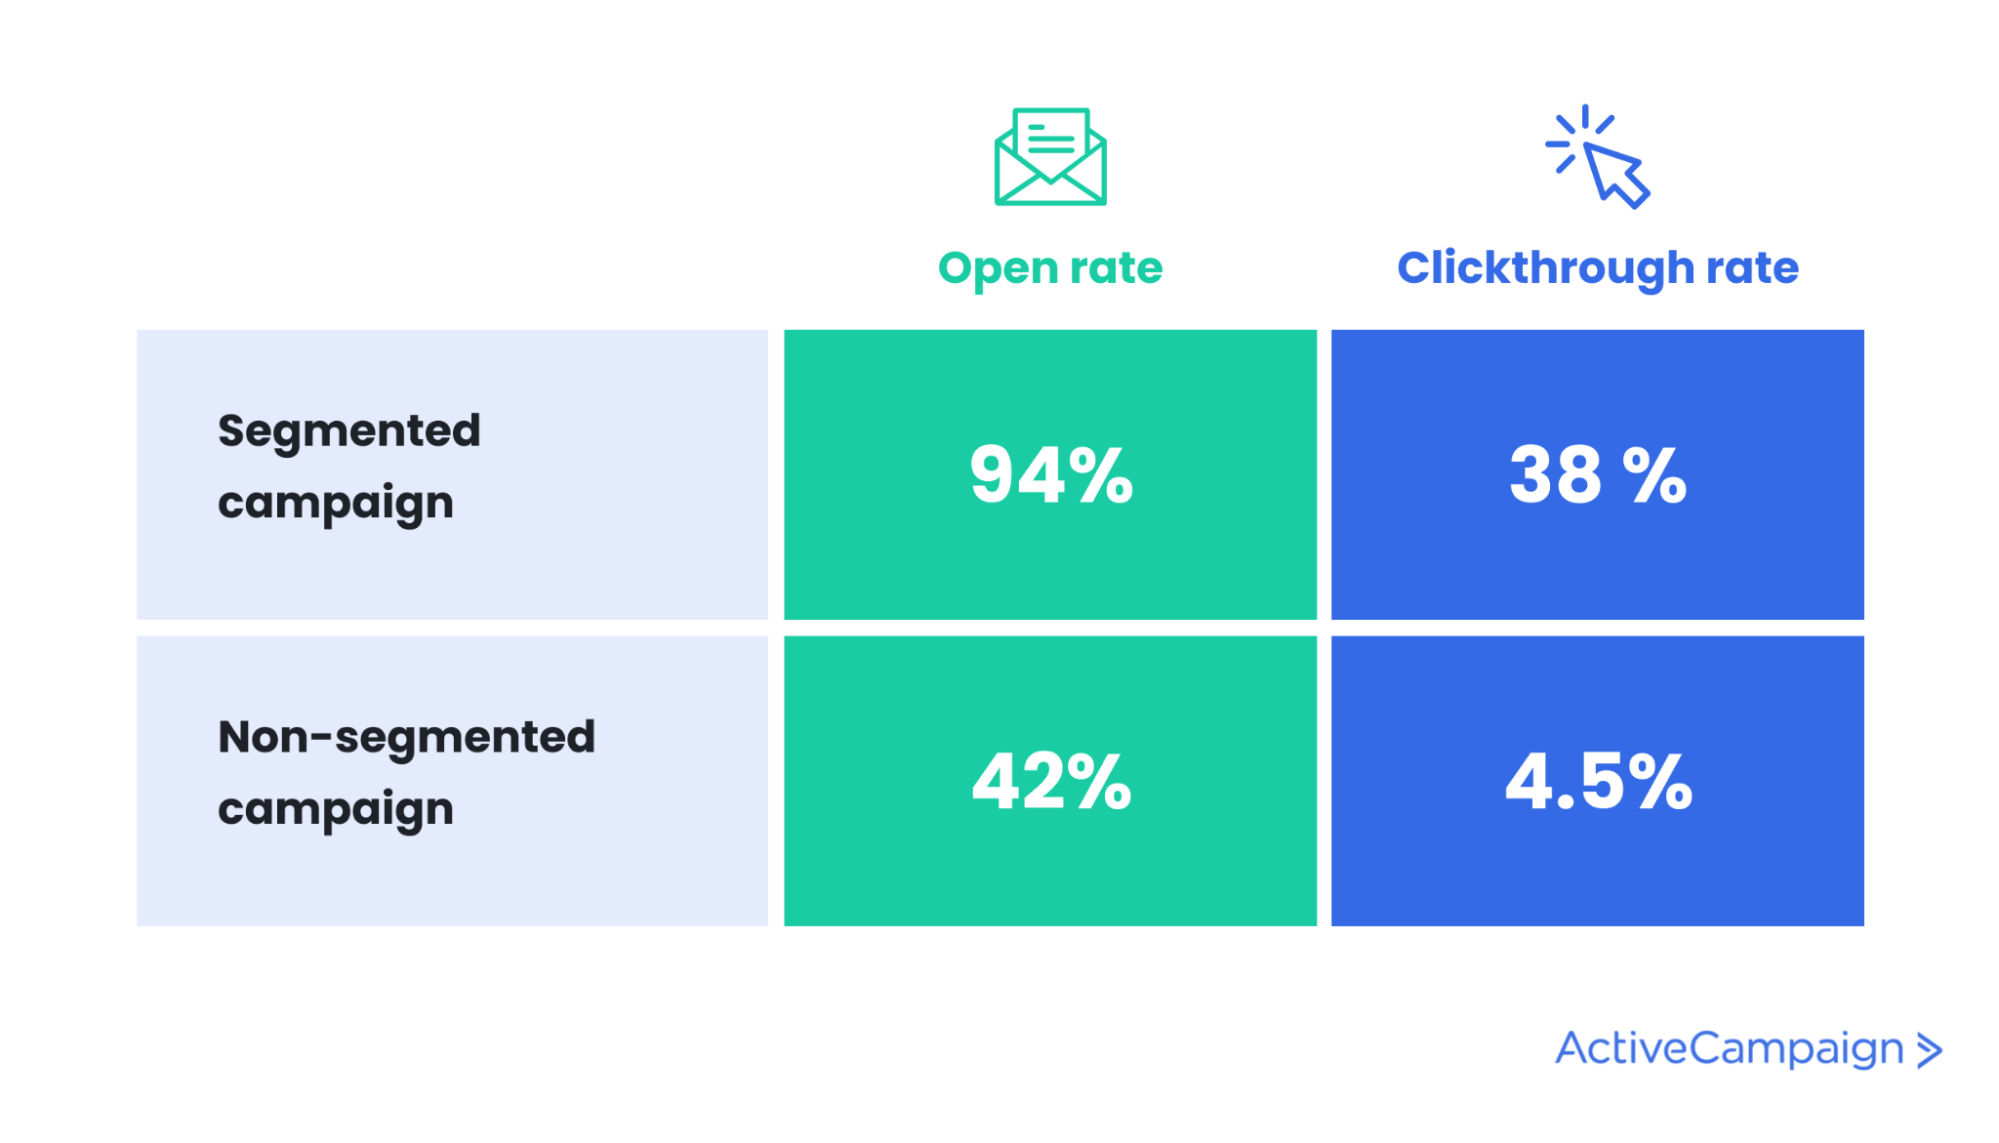 infographic stating that email users check their email more often on mobile devices